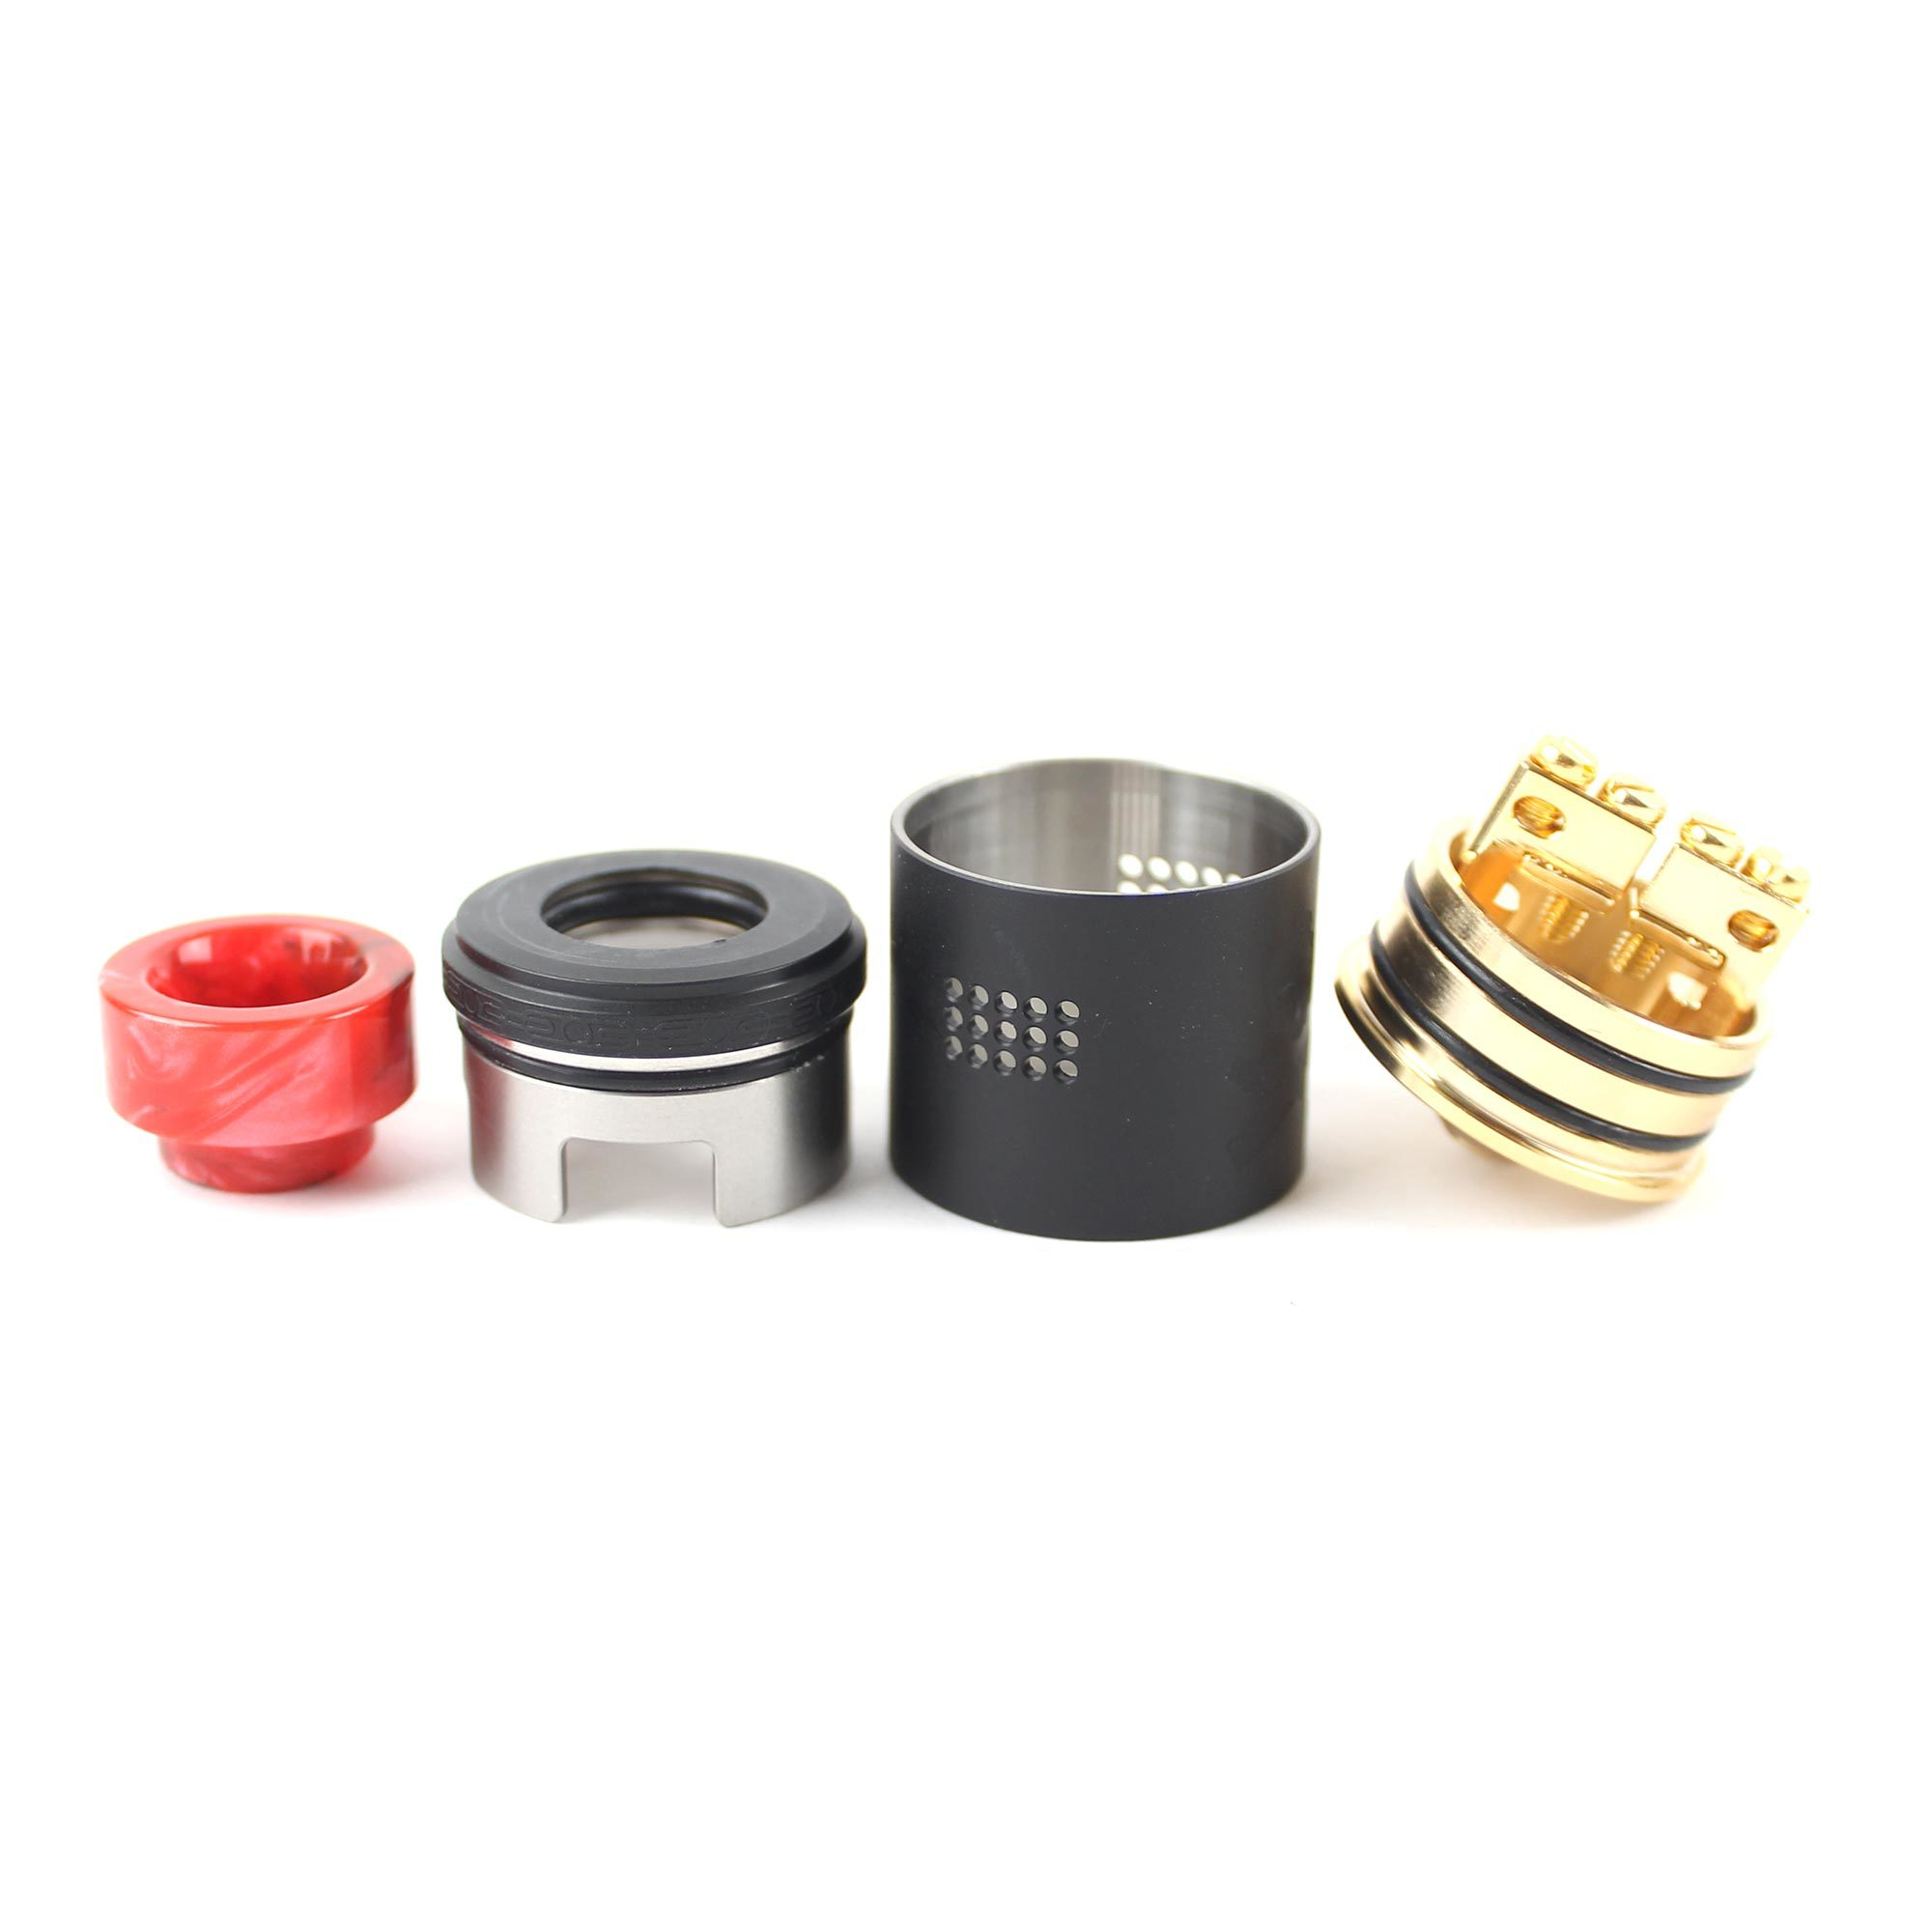 Дрипка Vandy Vape Bonza RDA (Authentic) в разборе